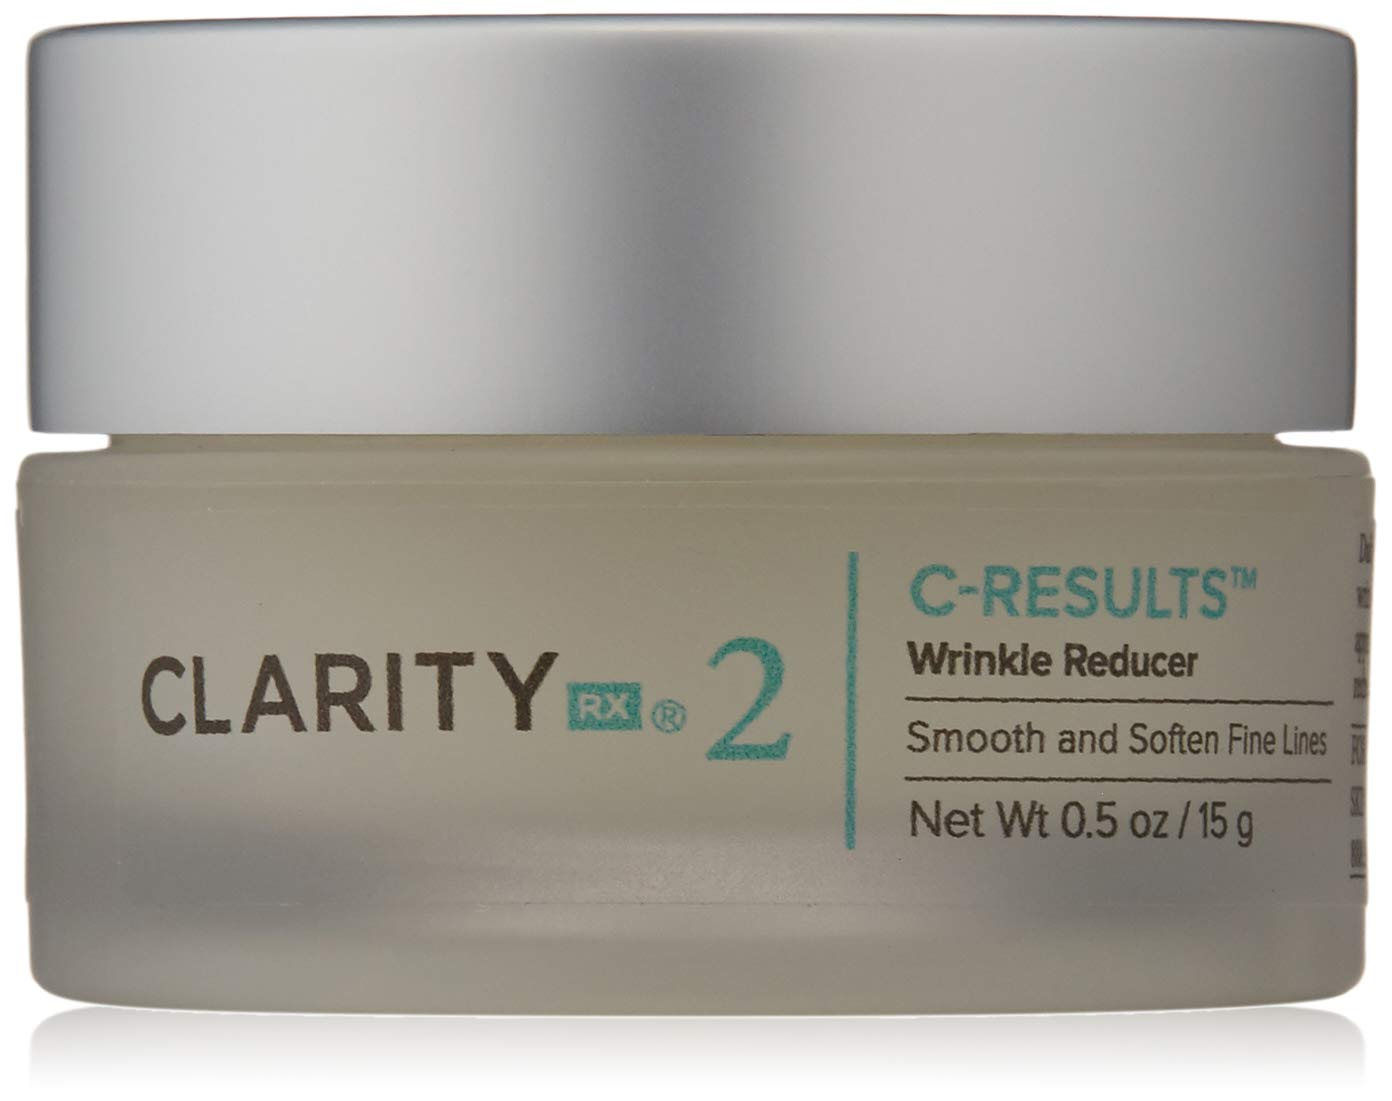 ClarityRx 2 C-Results Wrinkle Reducer, 0.5 oz